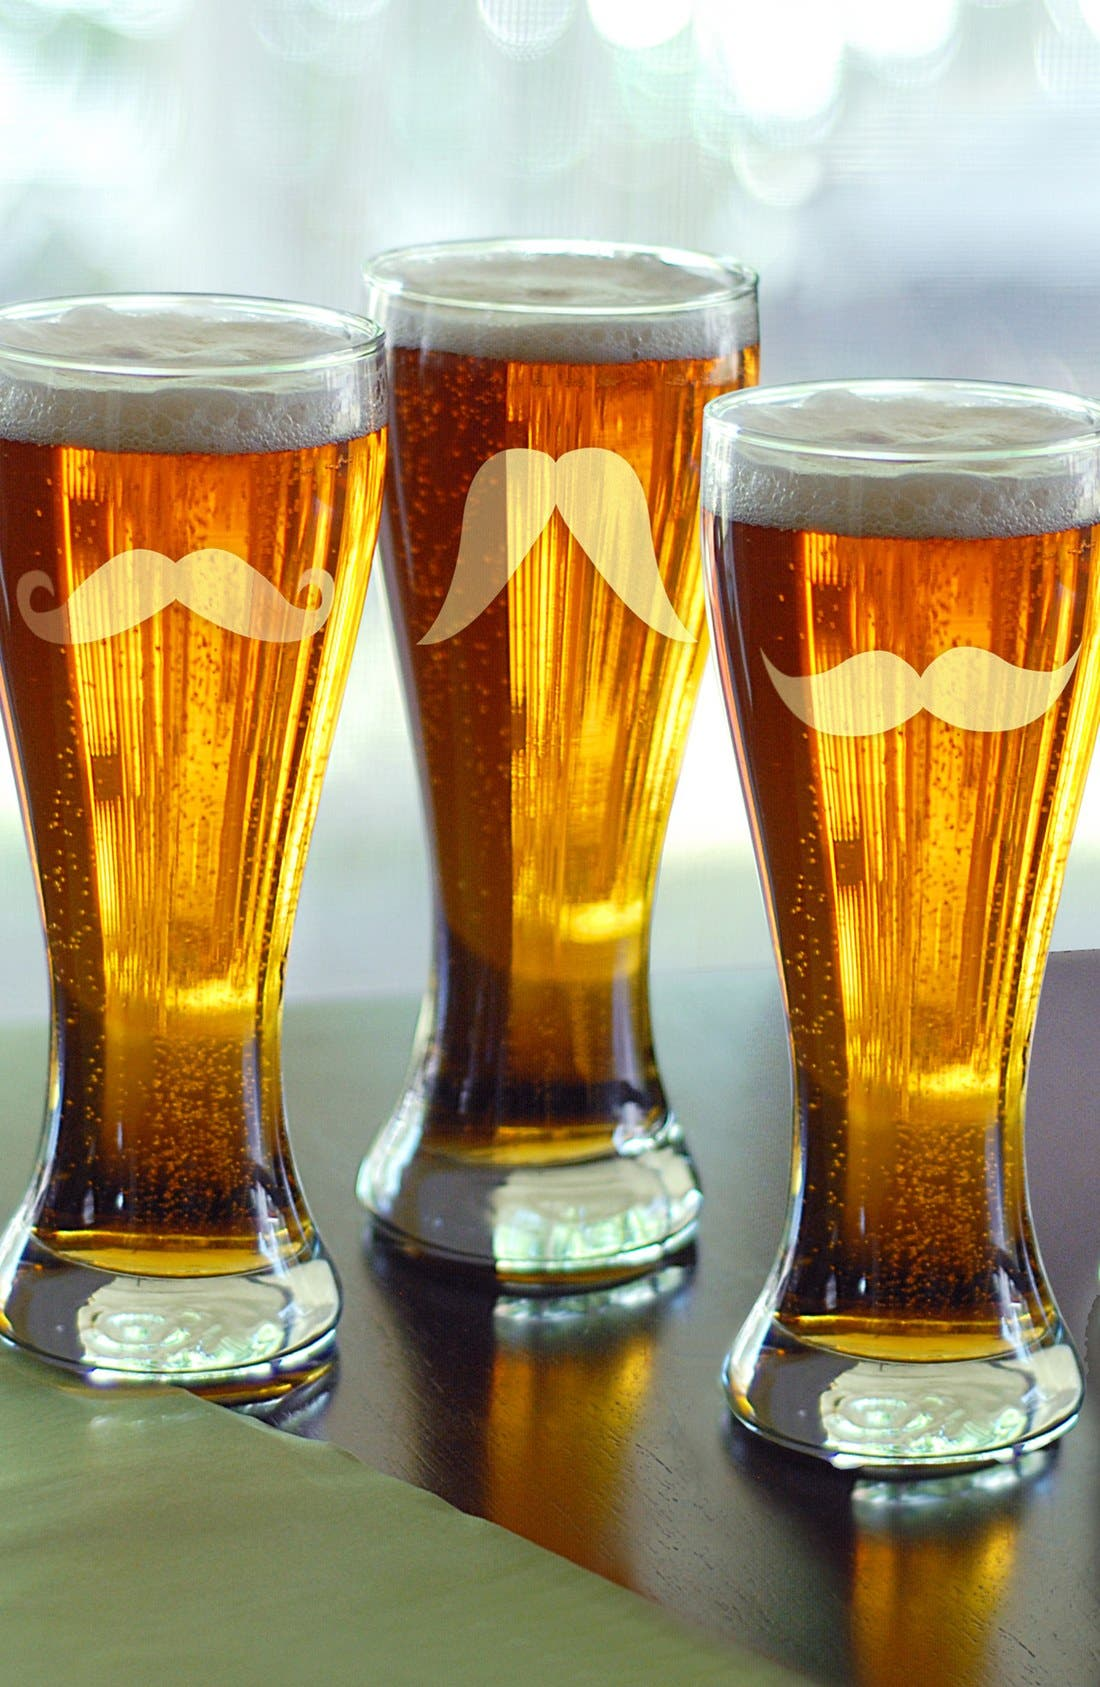 Alternate Image 1 Selected - Cathy's Concepts Mustache Pilsner Glasses (Set of 4)